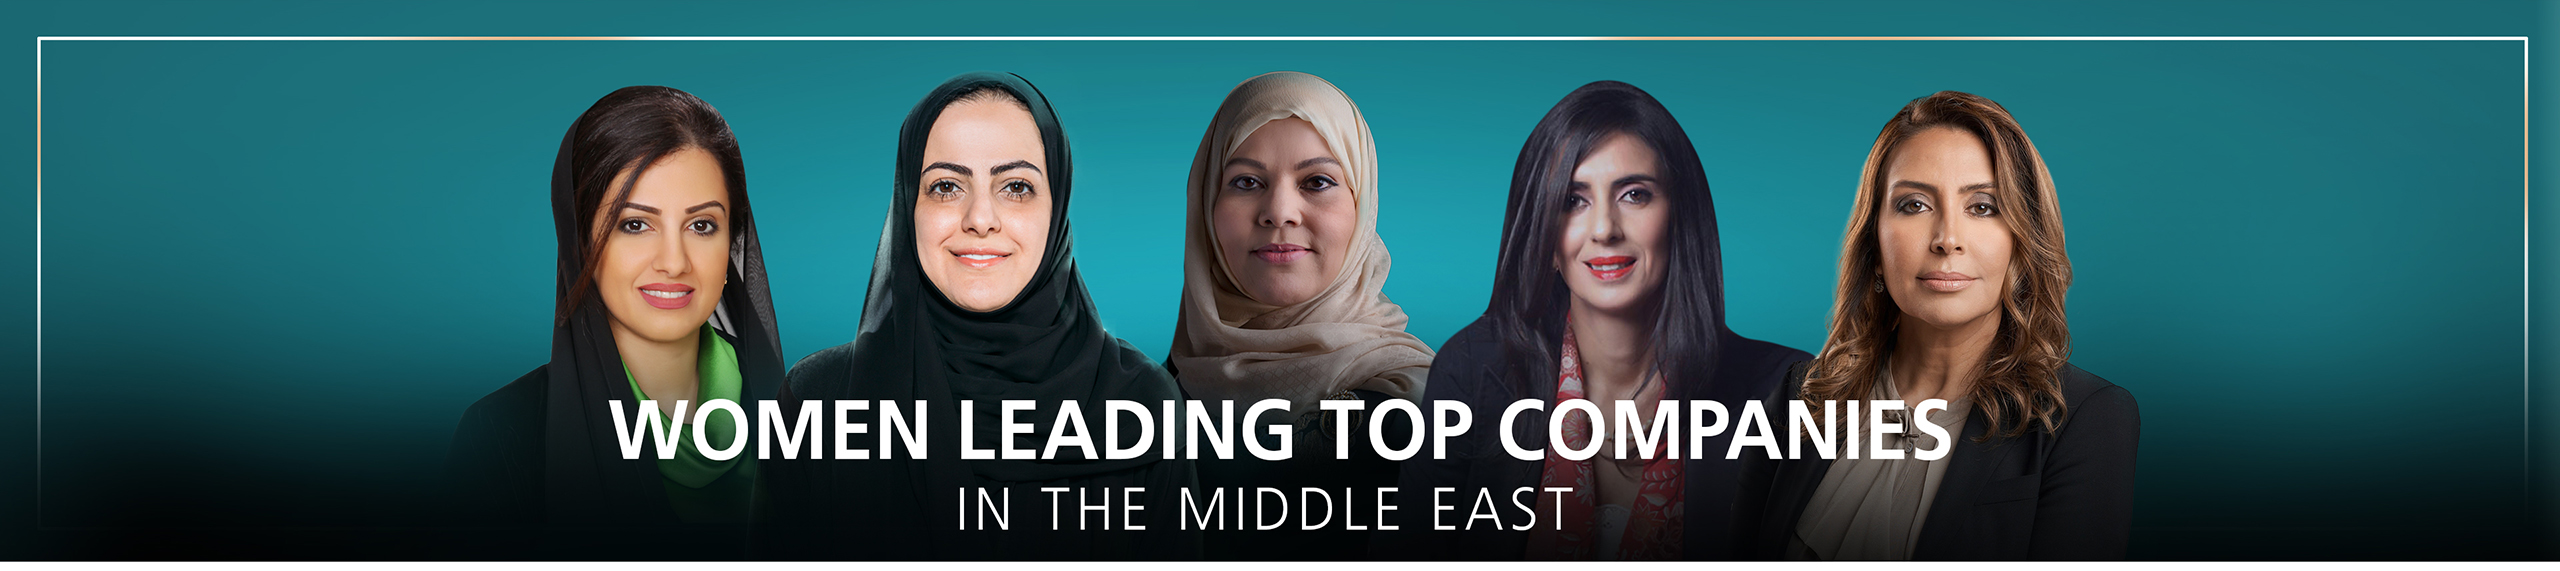 Women Leading Top Companies In The Middle East